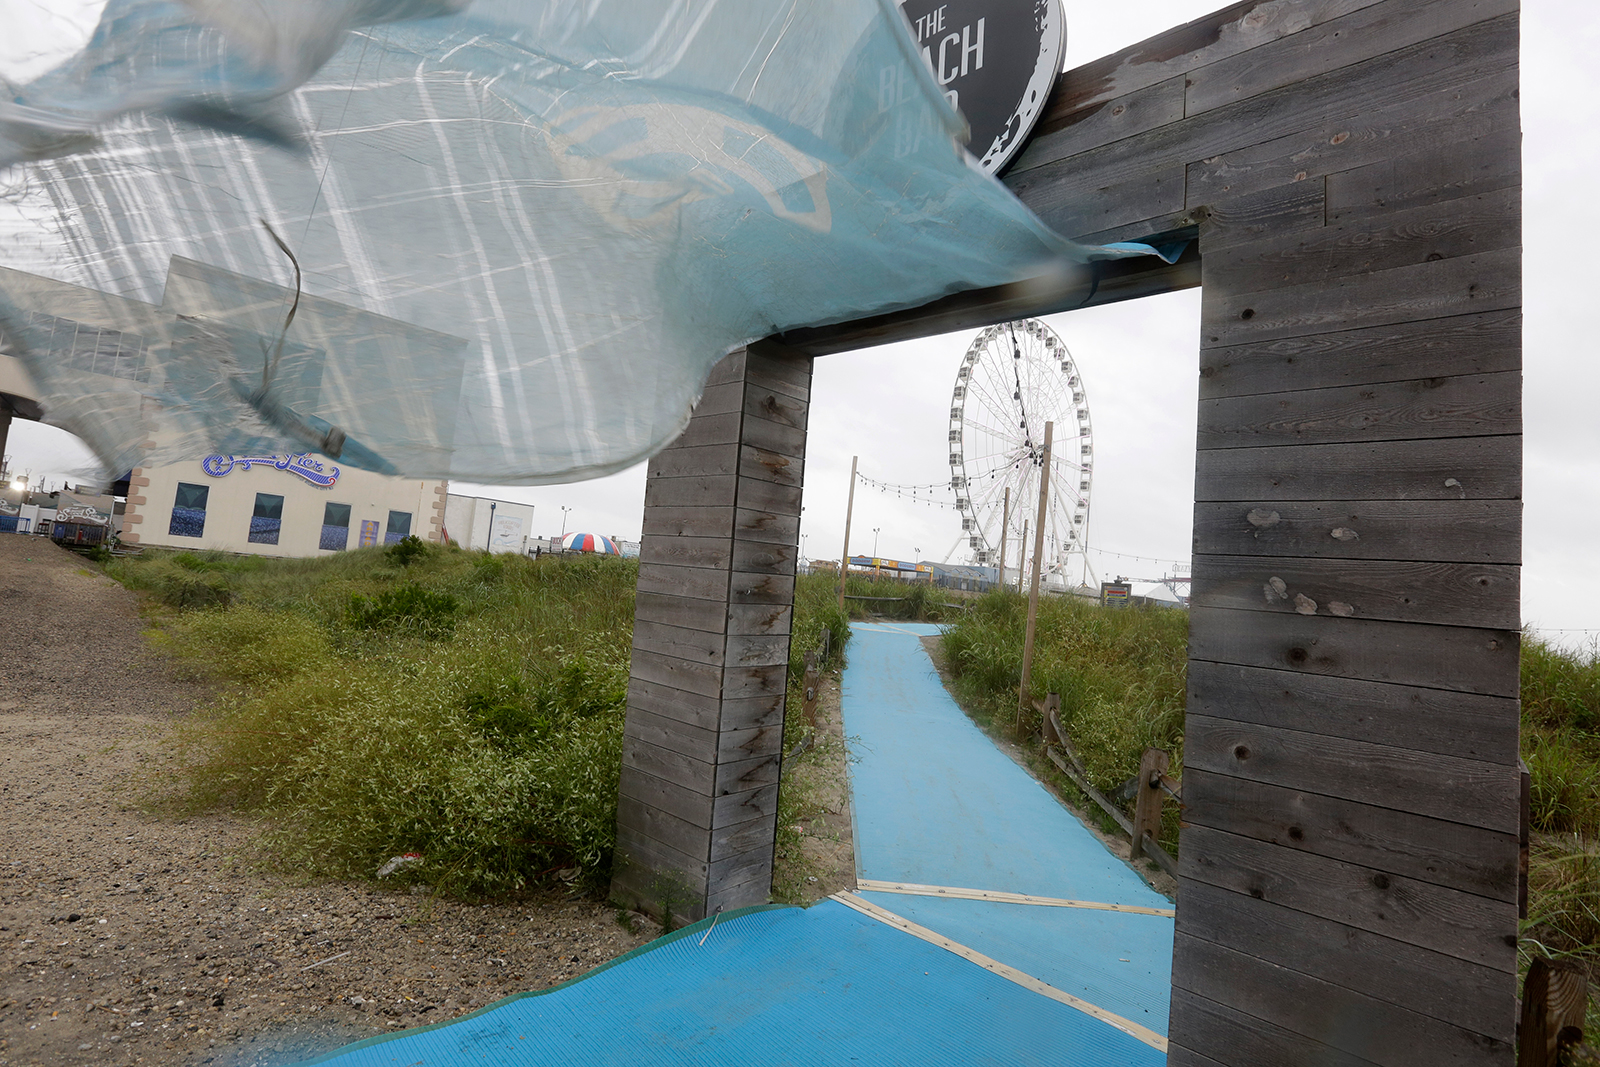 A tarp meant to close a seaside restaurant is blown by wind Tuesday, Aug. 4, in Atlantic City, New Jersey.